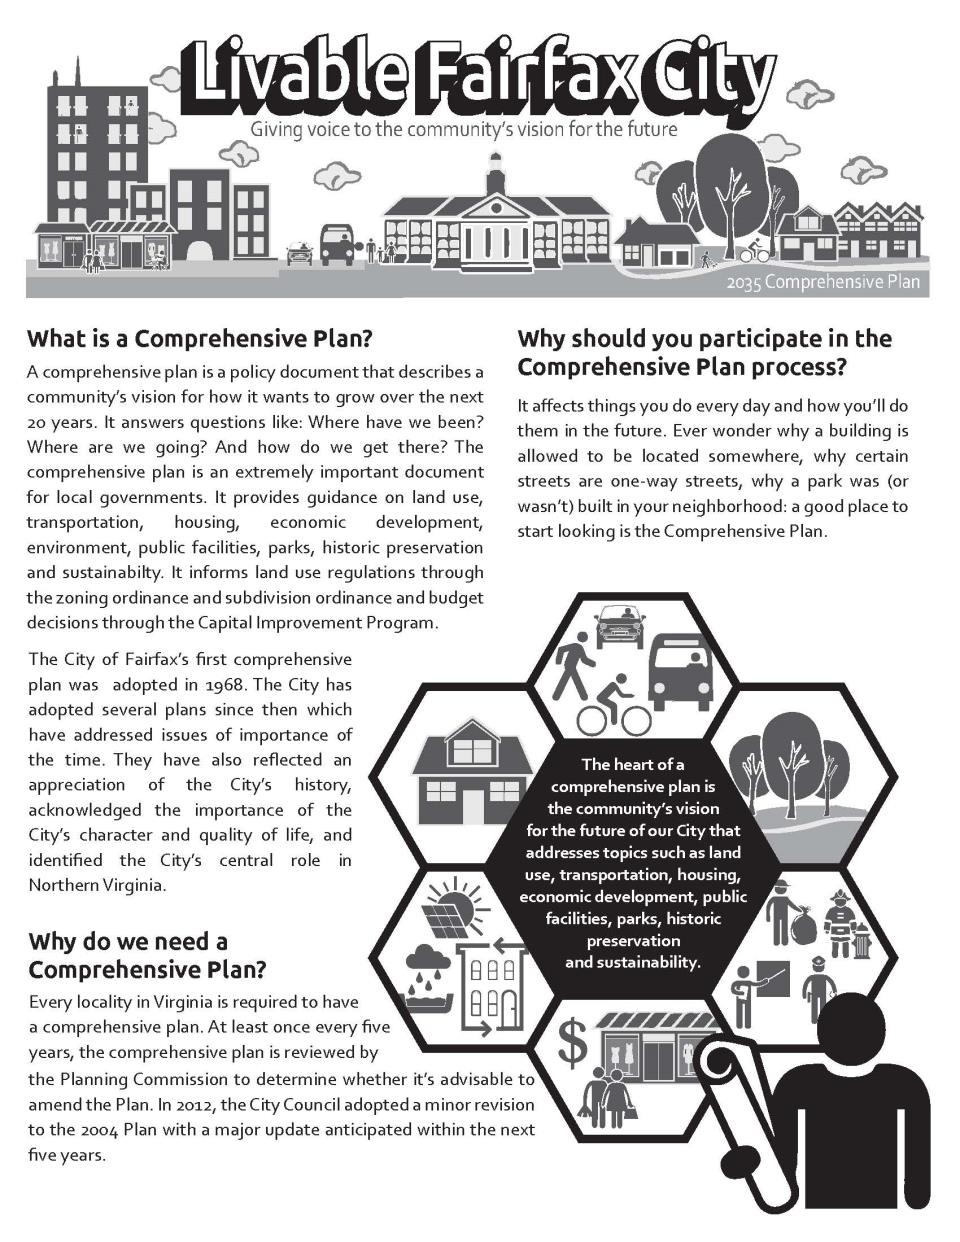 summary of what a comprehensive plan is and why it matters to the public